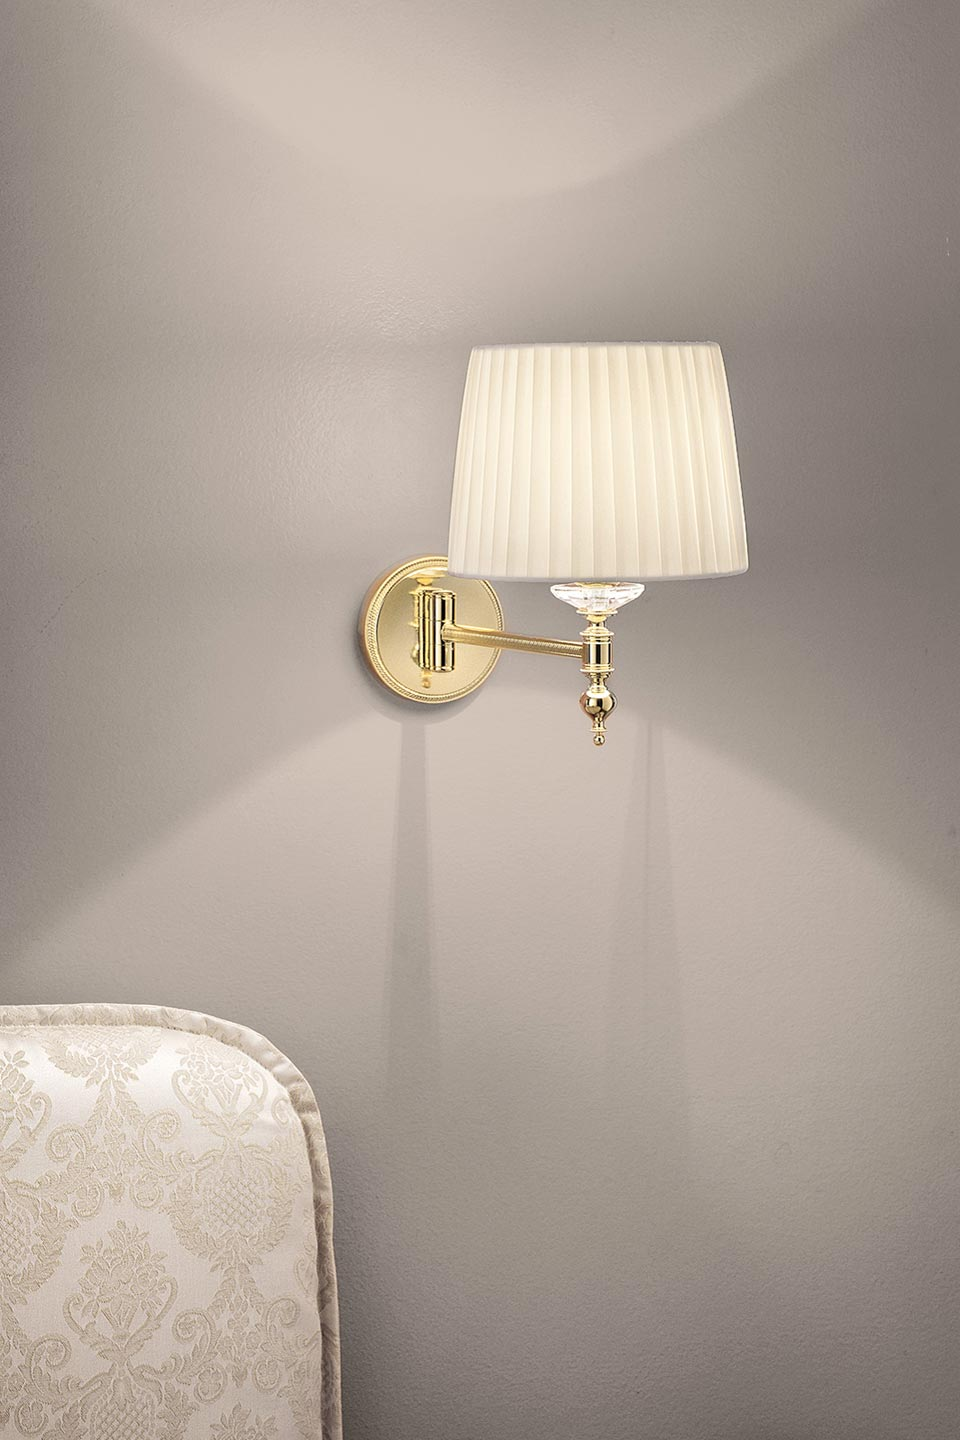 Classic ivory and gold wall lamp on adjustable arm. Masiero.